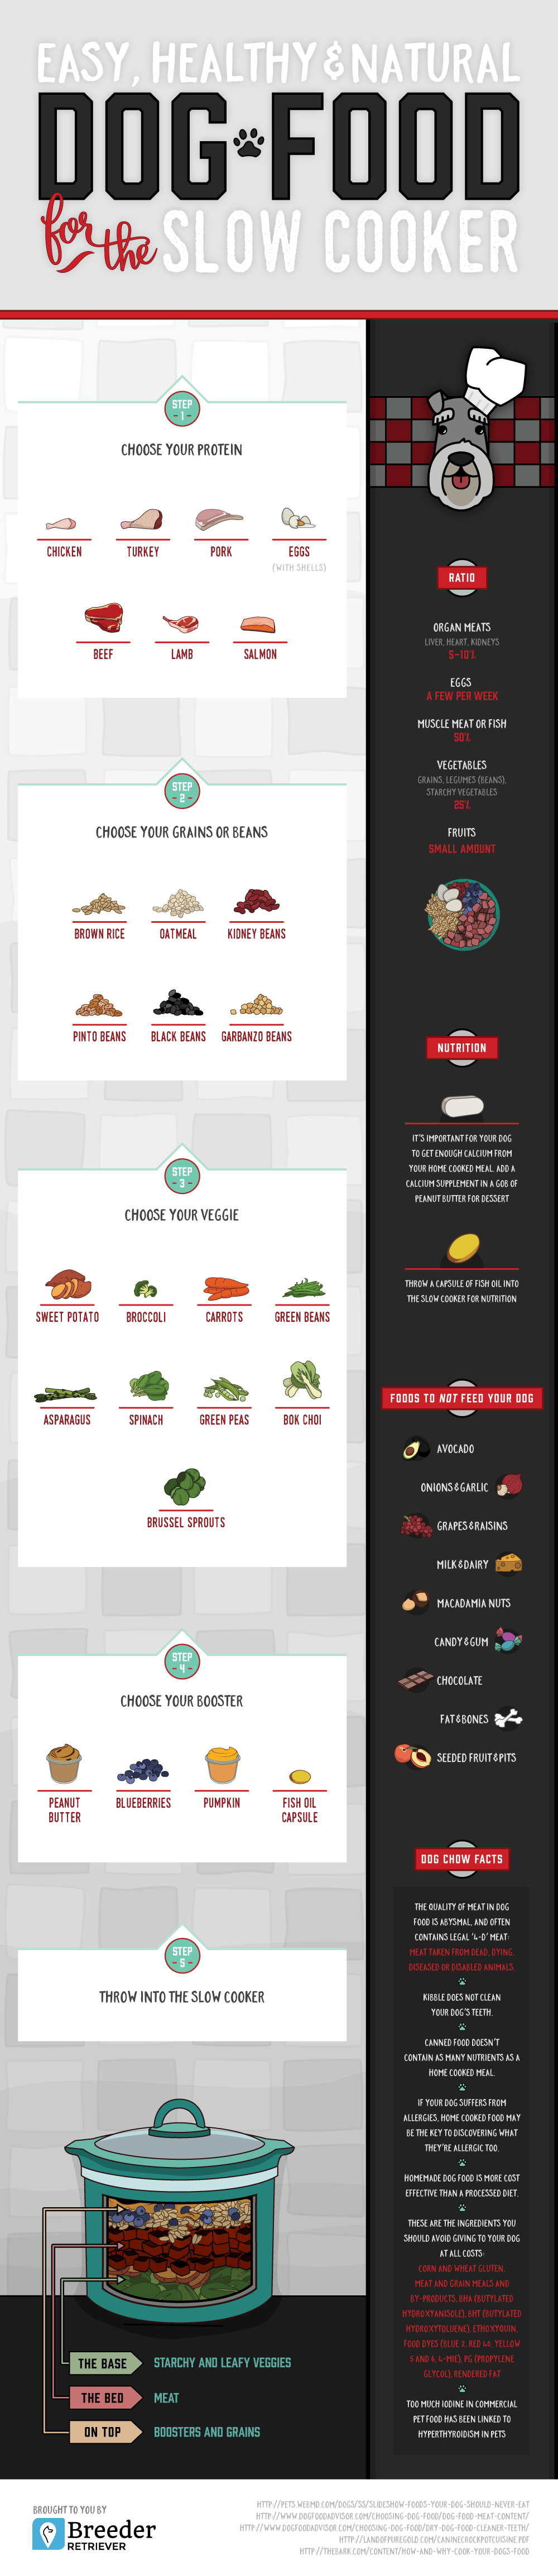 FitBark_Dog_Food_For_The_Slow_Cooker | Set Tails Wagging With This Healthy Homemade Dog Food Infographic!